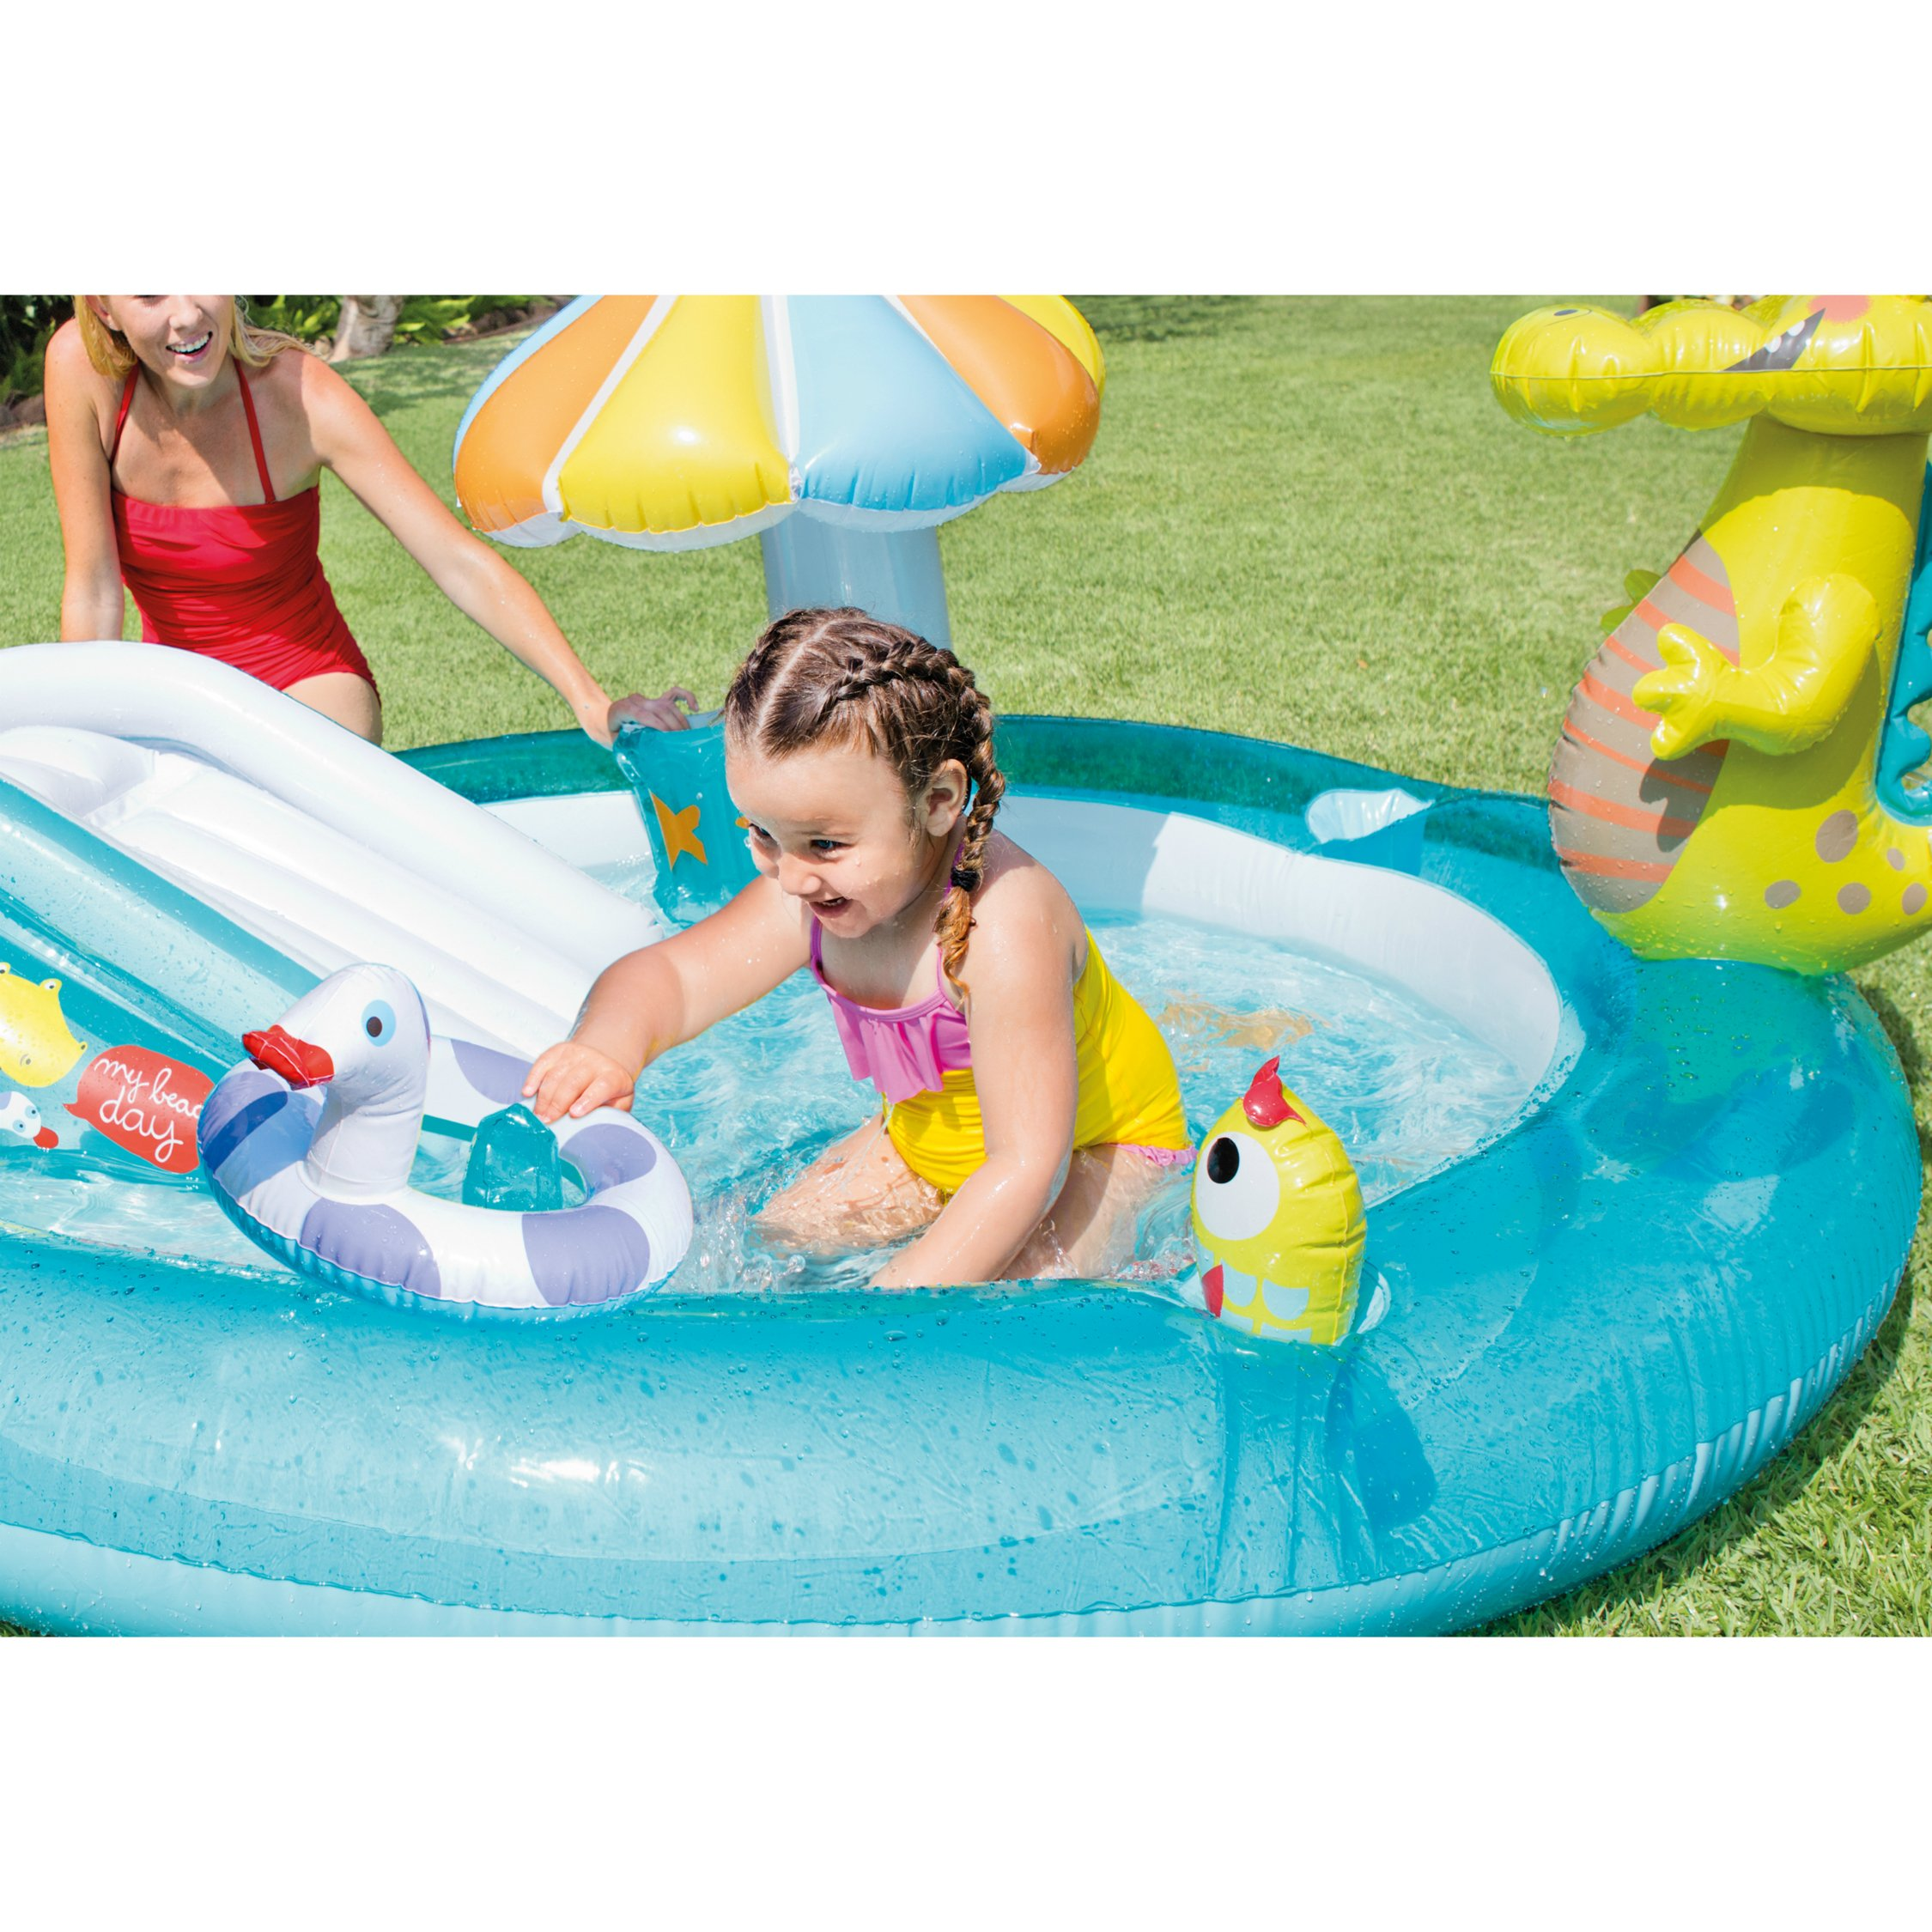 Intex Gator Inflatable Play Center, 80'' X 68'' X 35'', for Ages 2+ by Intex (Image #4)